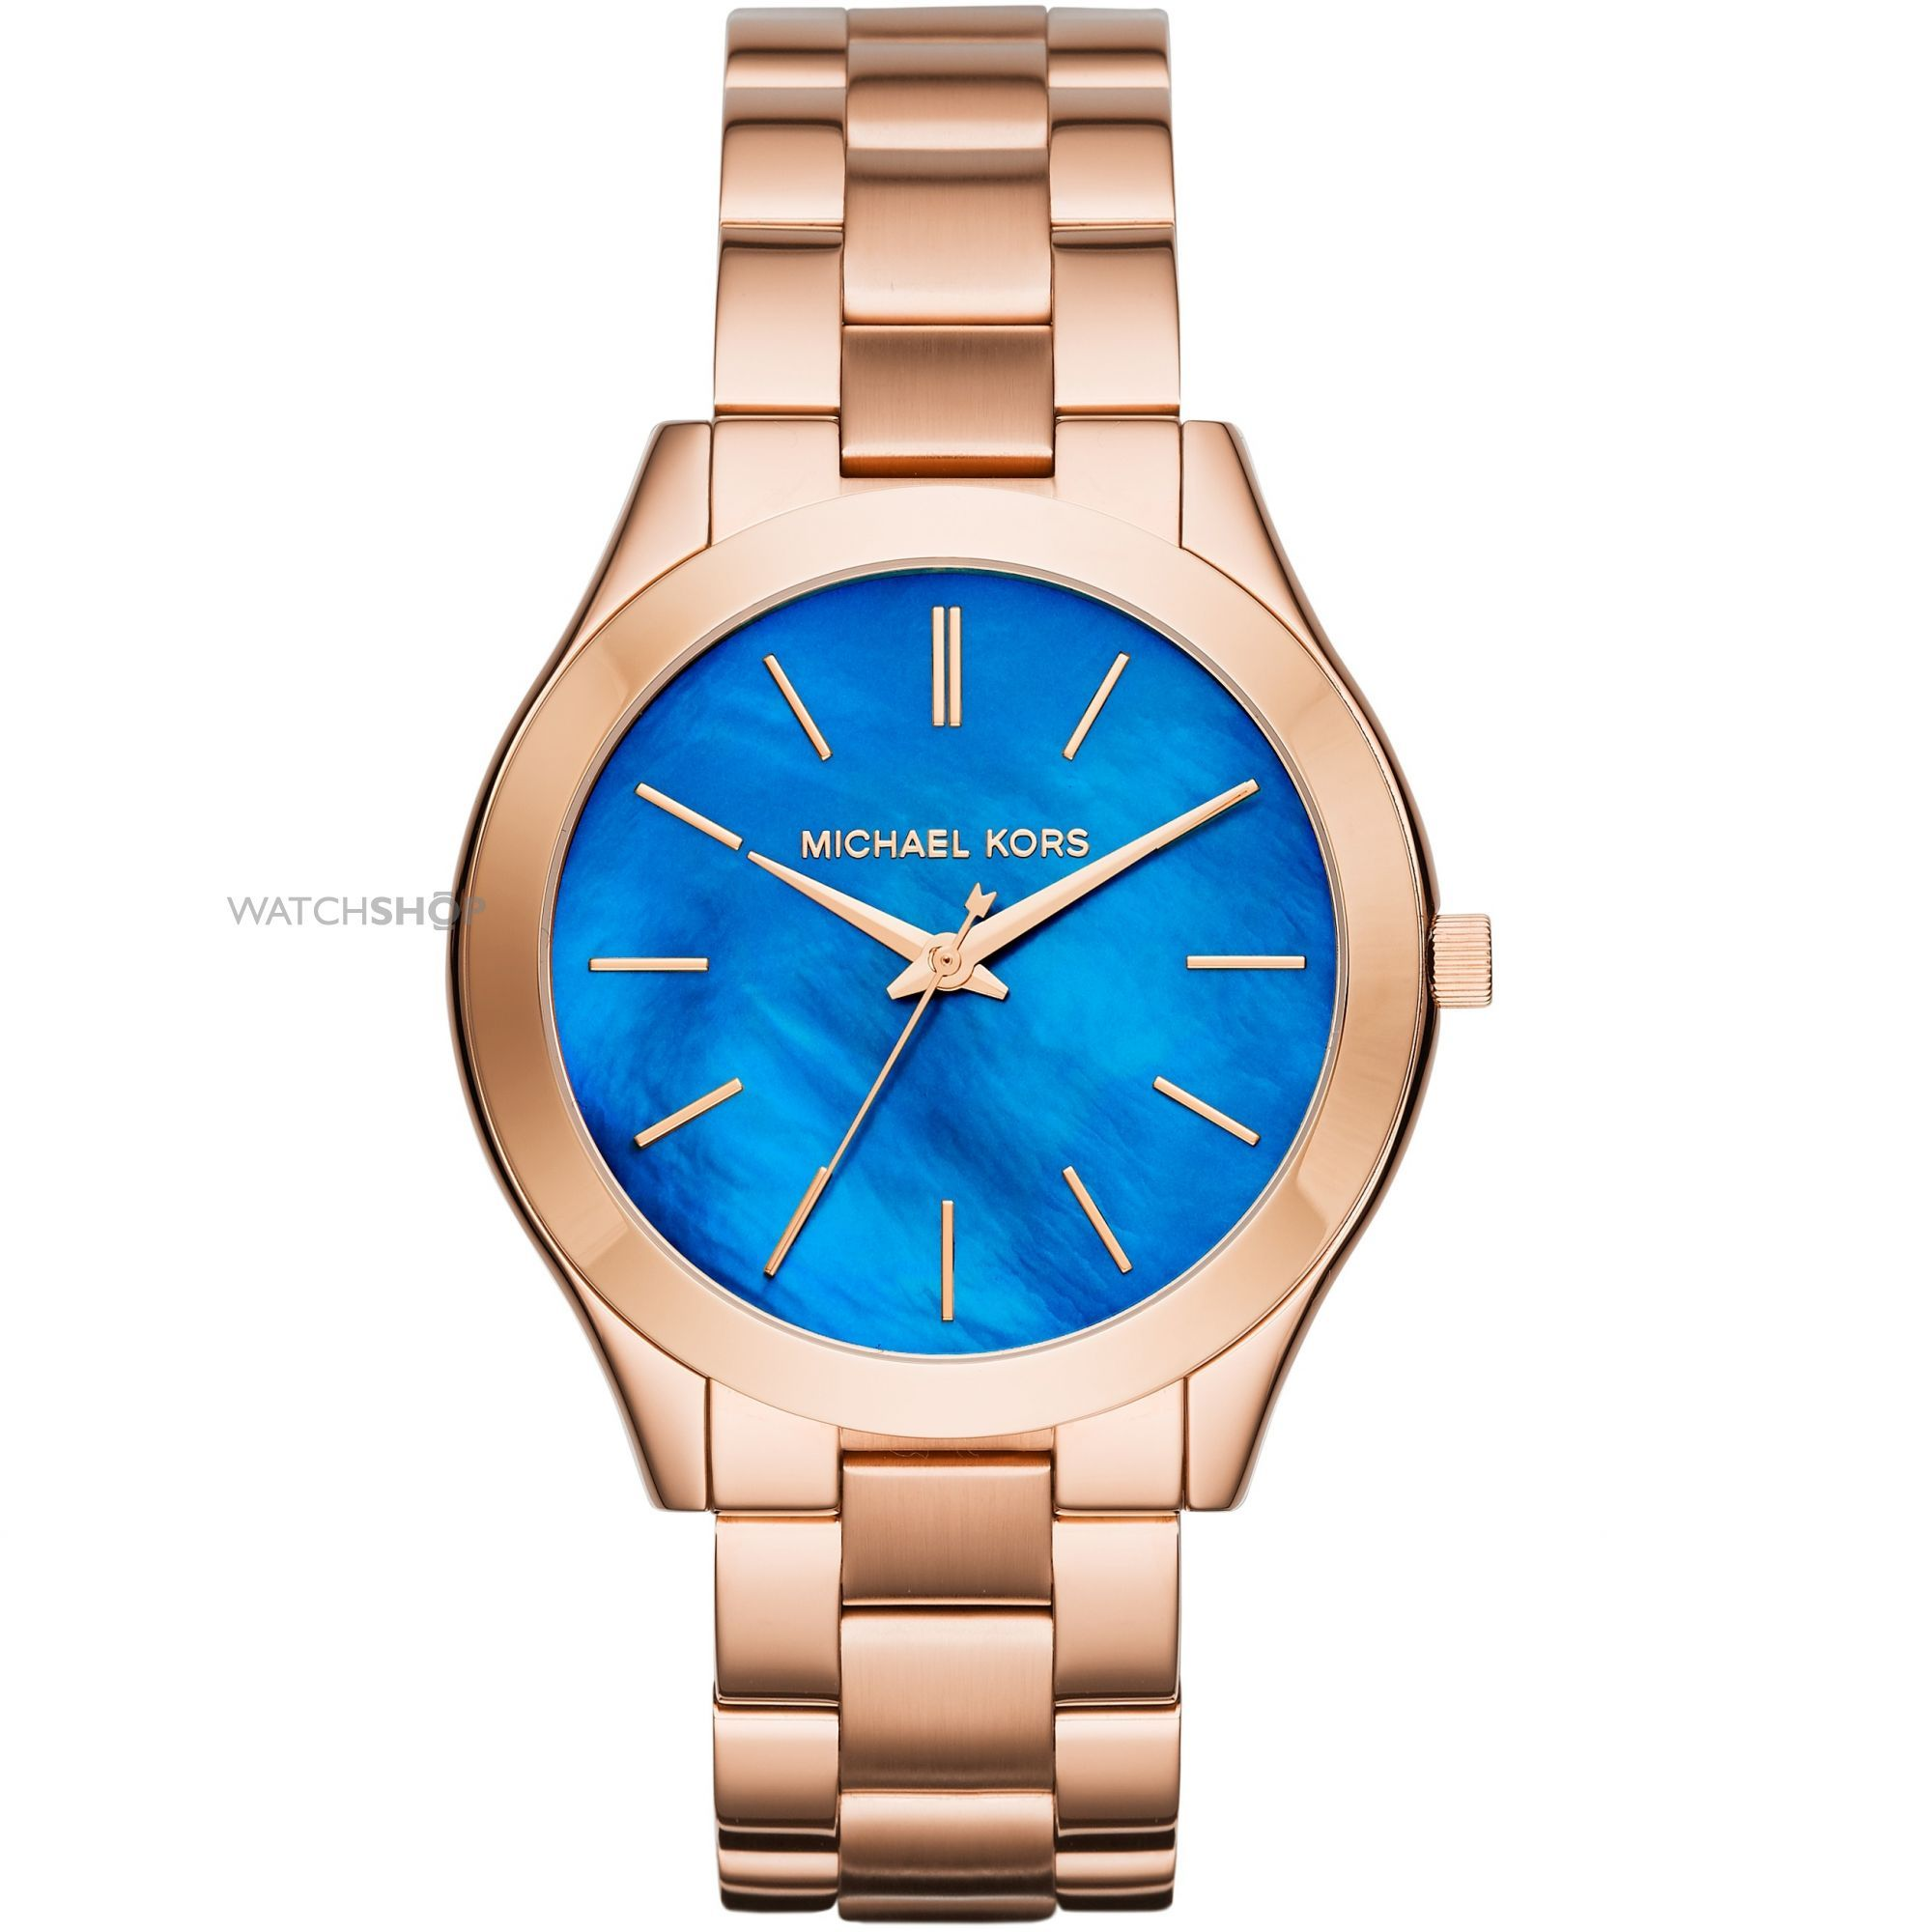 788095aa9b62 Ladies Michael Kors SLIM RUNWAY Watch MK3494